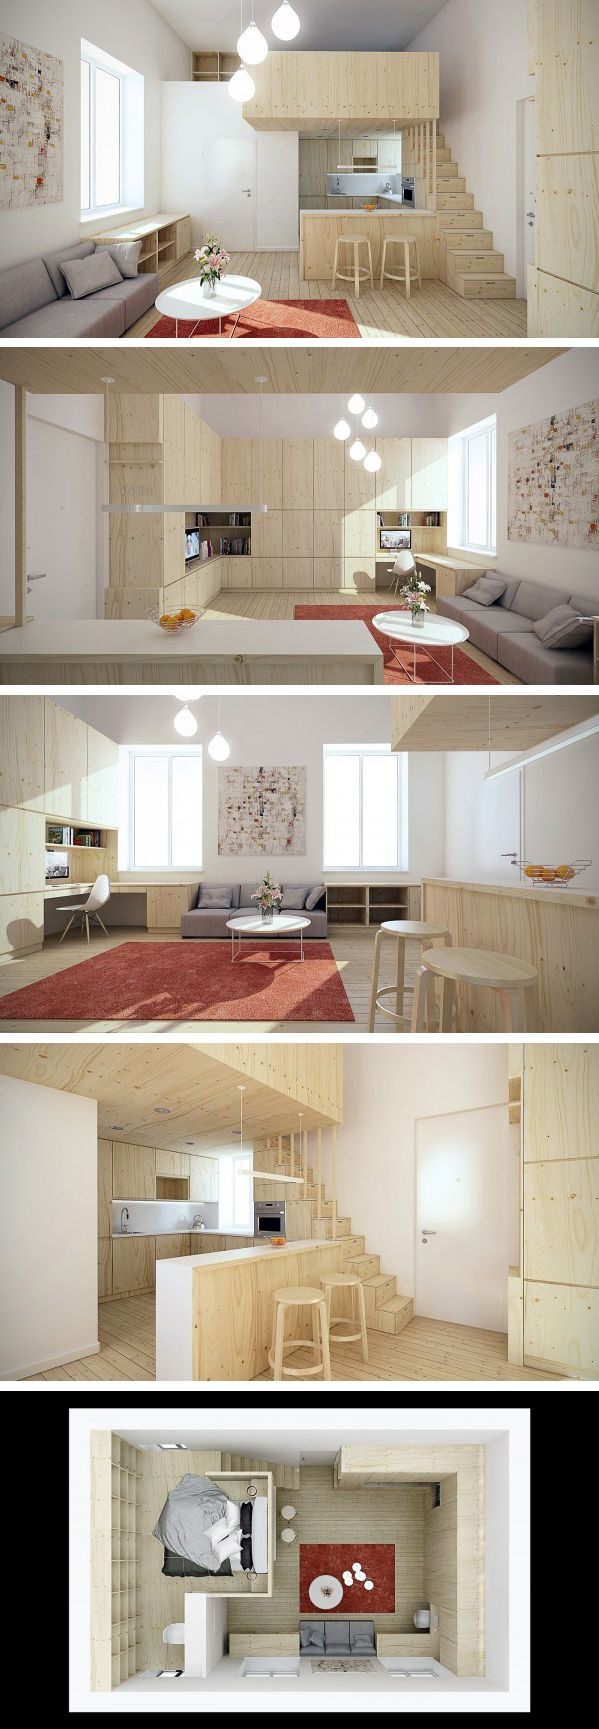 Loft de 25 metros quadrados https://za.pinterest.com/search/pins/?rs=ac&len=2&q=micro+loft+design&0=micro%7Cautocomplete%7C3&1=loft%7Cautocomplete%7C3&2=design%7Cautocomplete%7C3